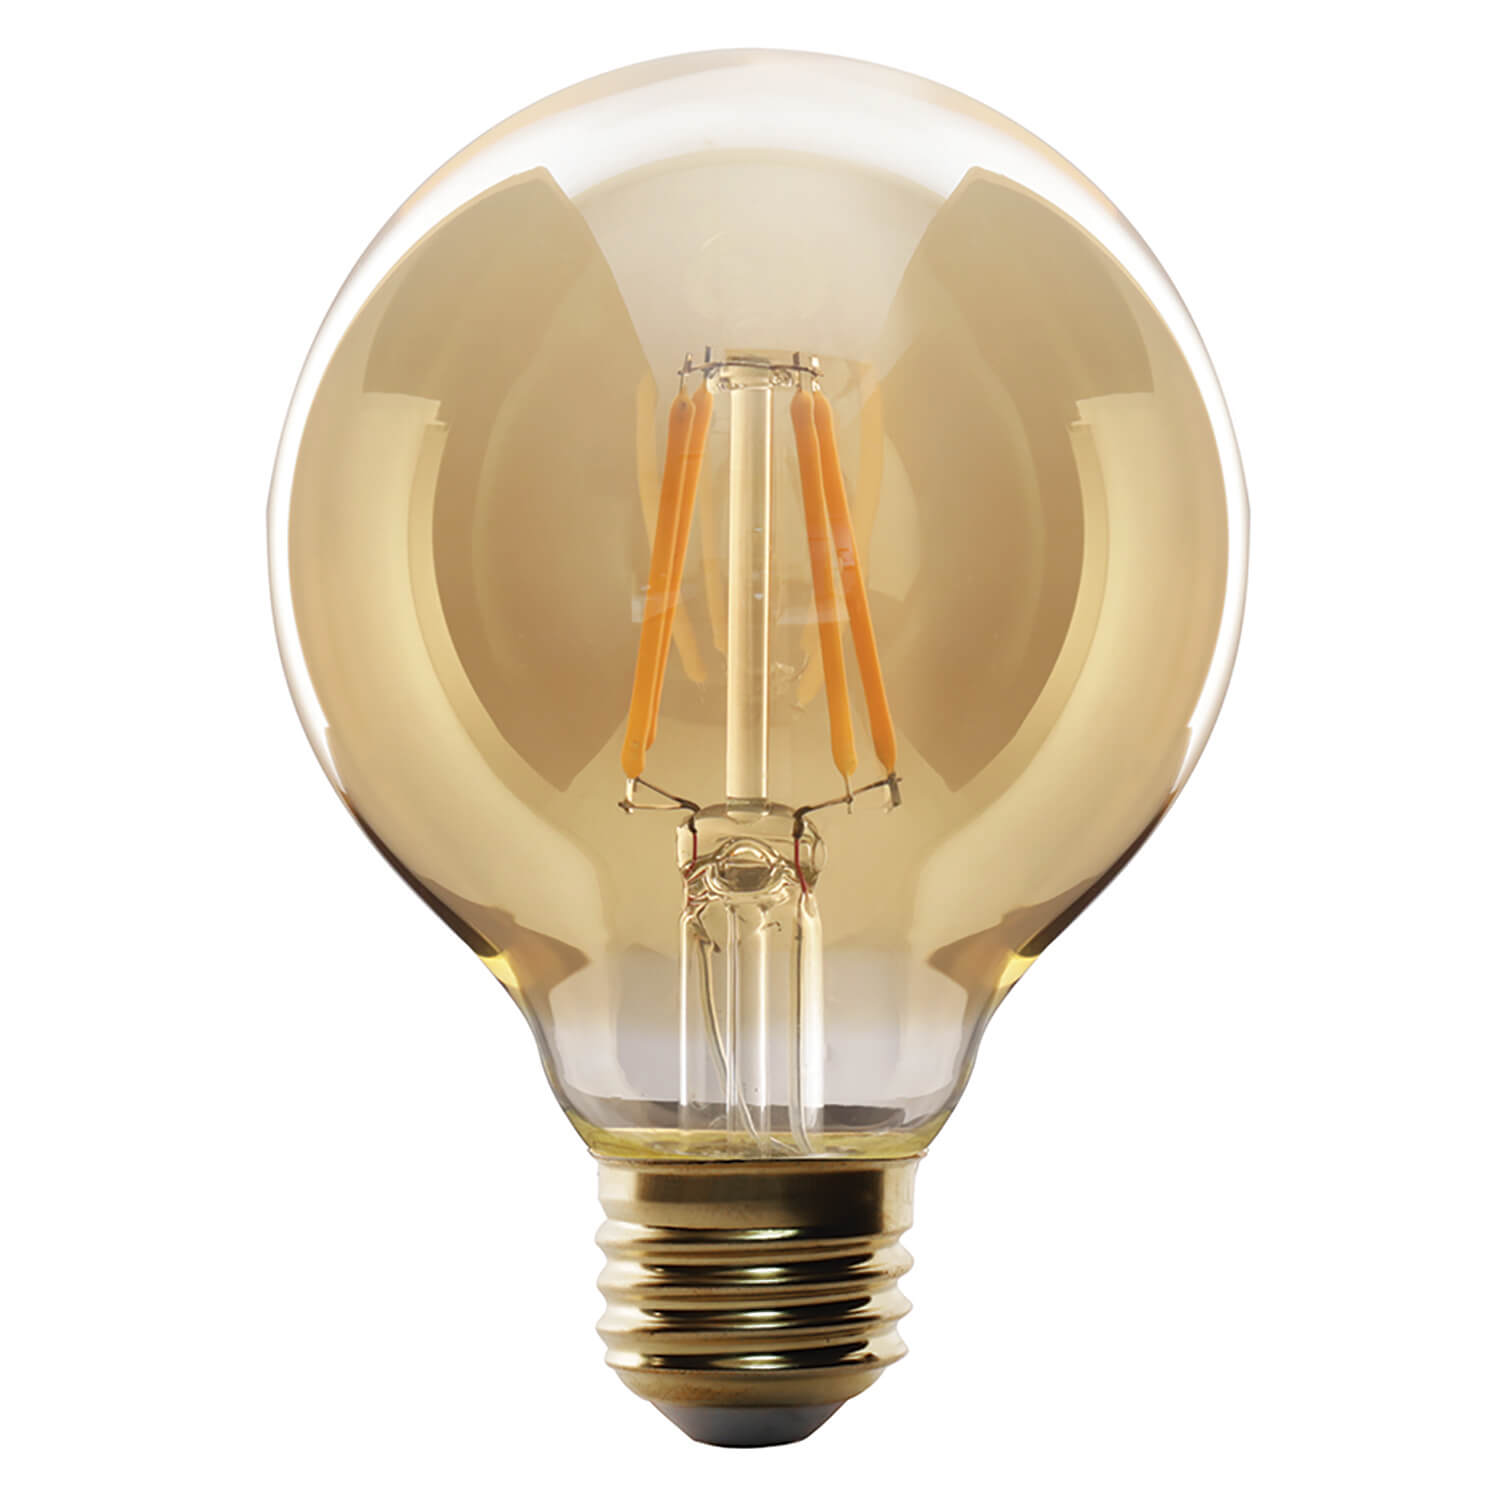 350 Lumen Vintage 2100k Dimmable Led G25 Feit Electric